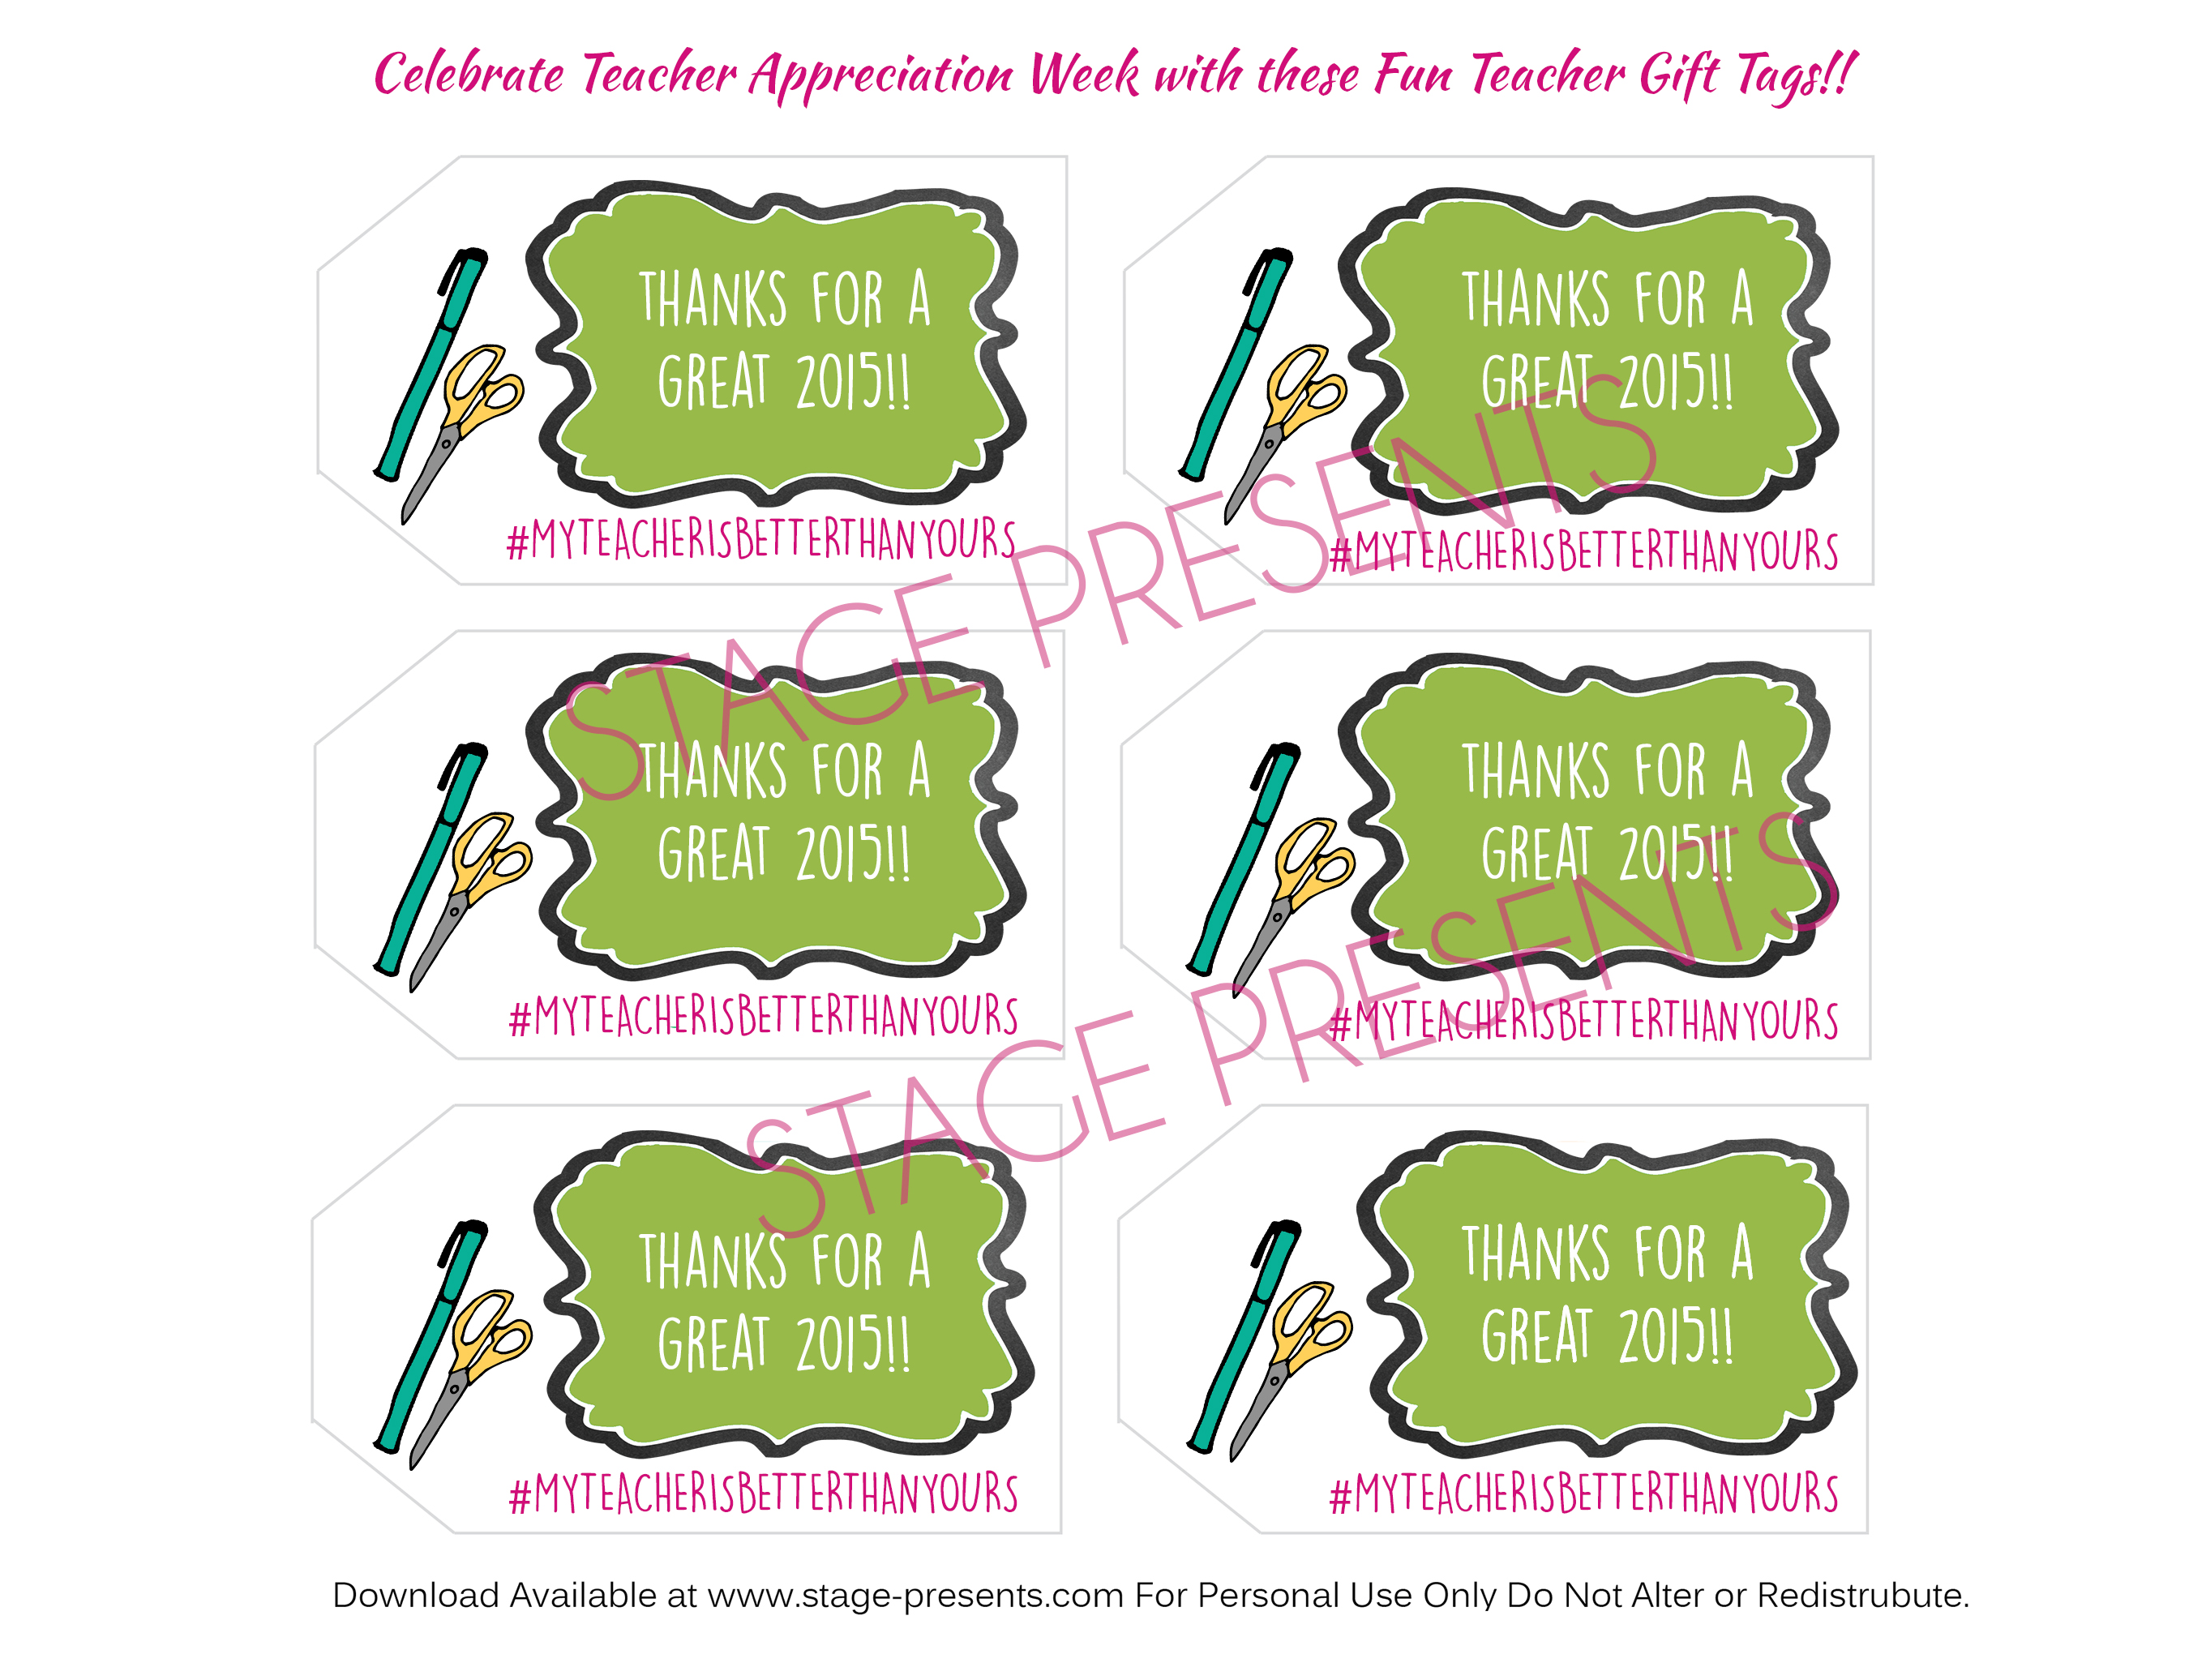 ... Devoted Teachers + Free Printable Teacher Gift Tags - Stage Presents